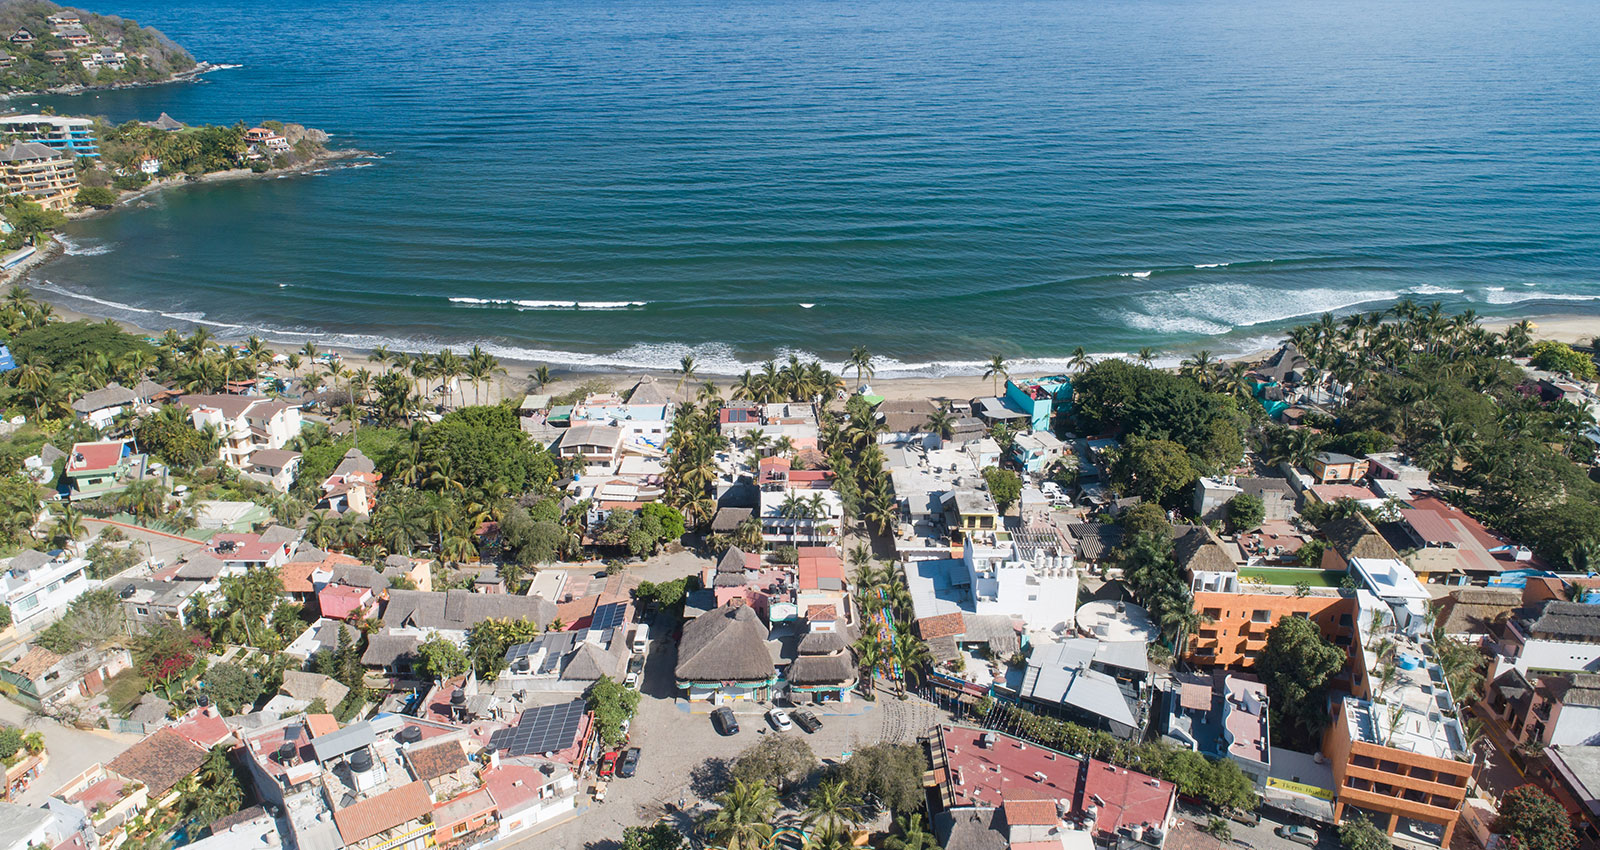 Aerial view of the beachfront neighborhood